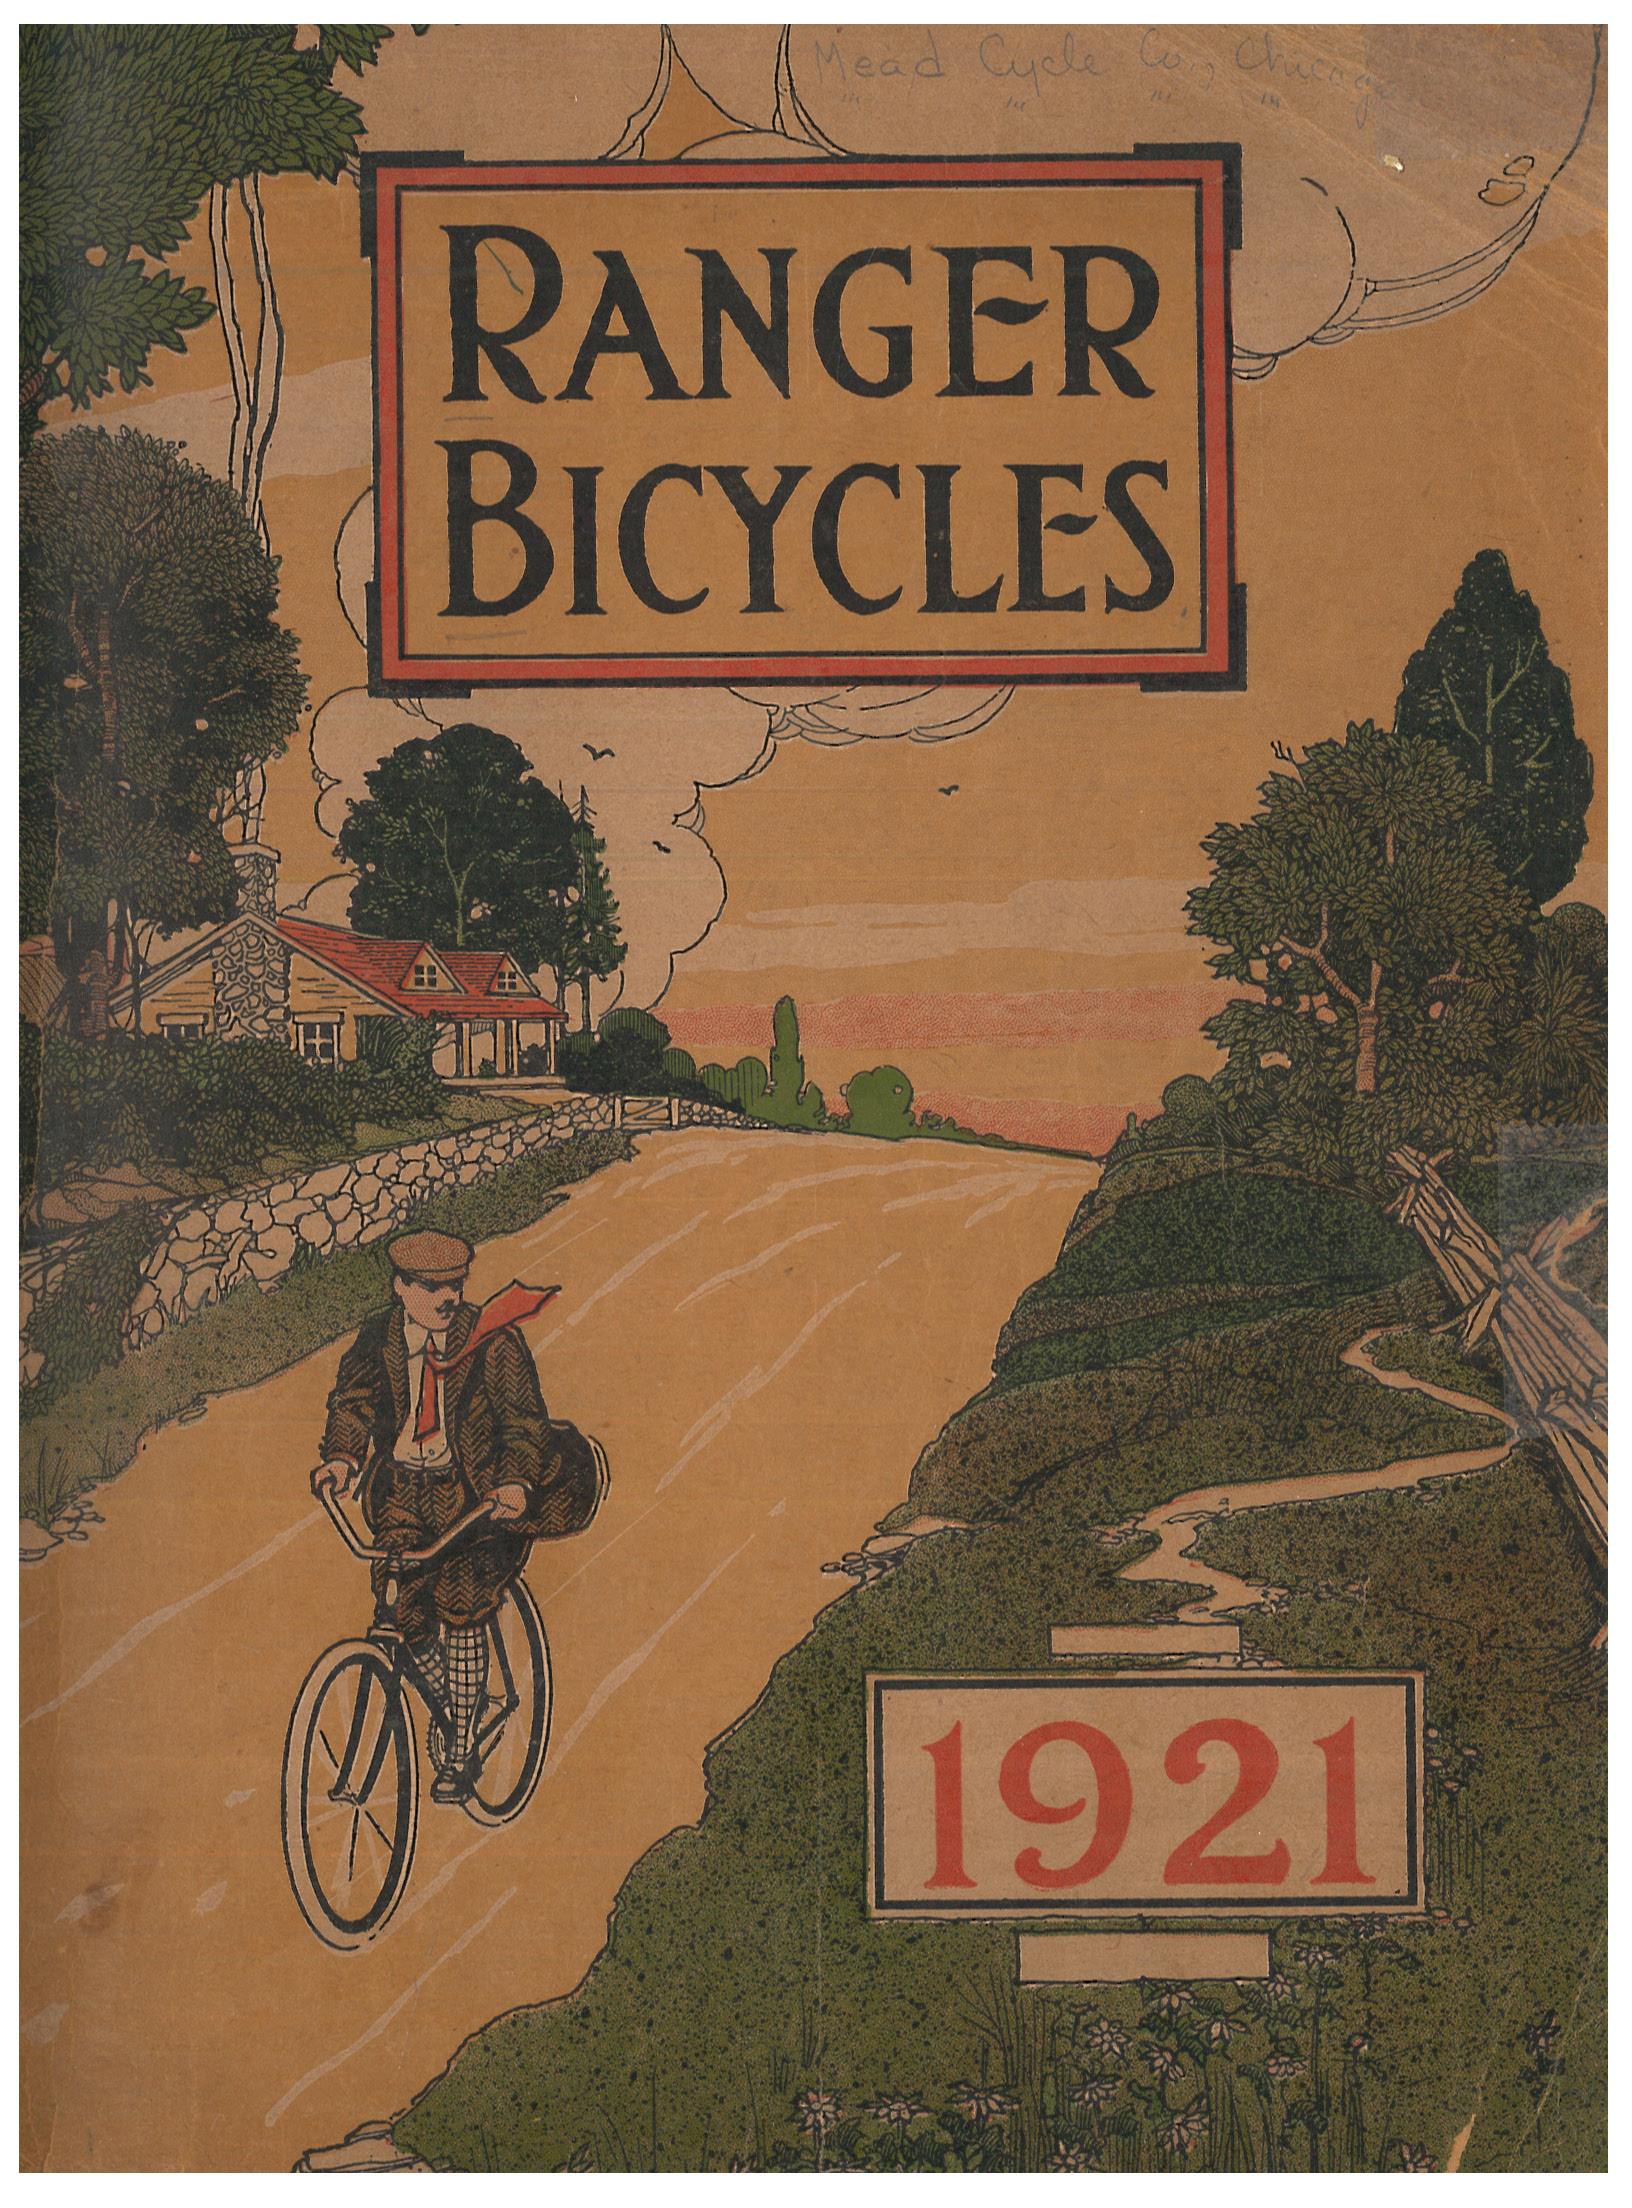 front cover of Ranger Bicycles 1921 catalog showing a man riding a bicycle down a road